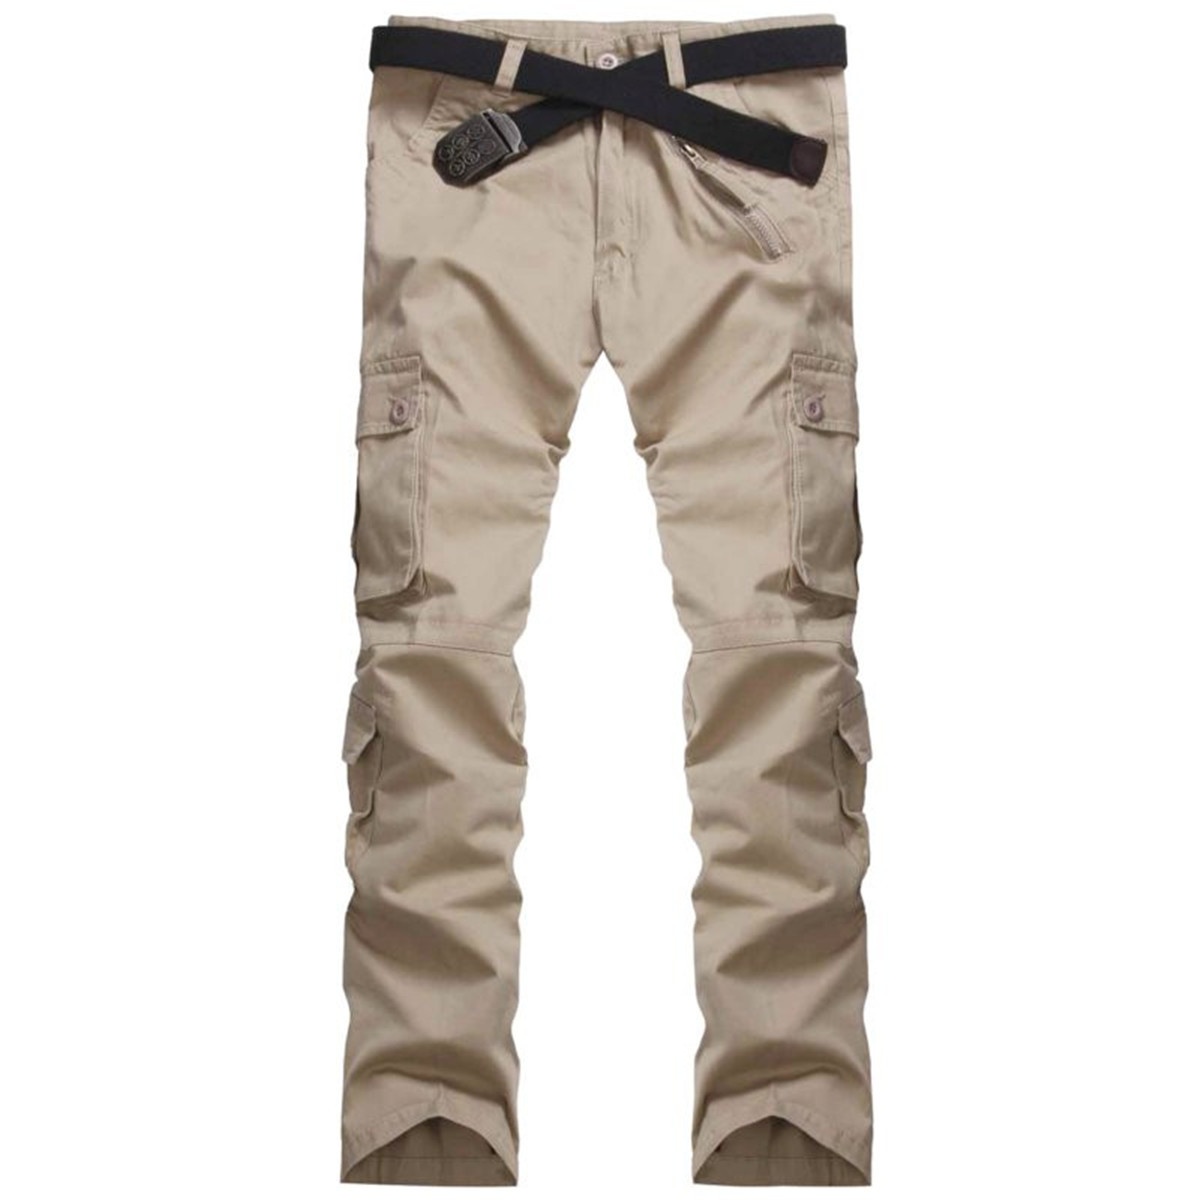 Compare Prices on Zipper Cargo Pants- Online Shopping/Buy Low ...